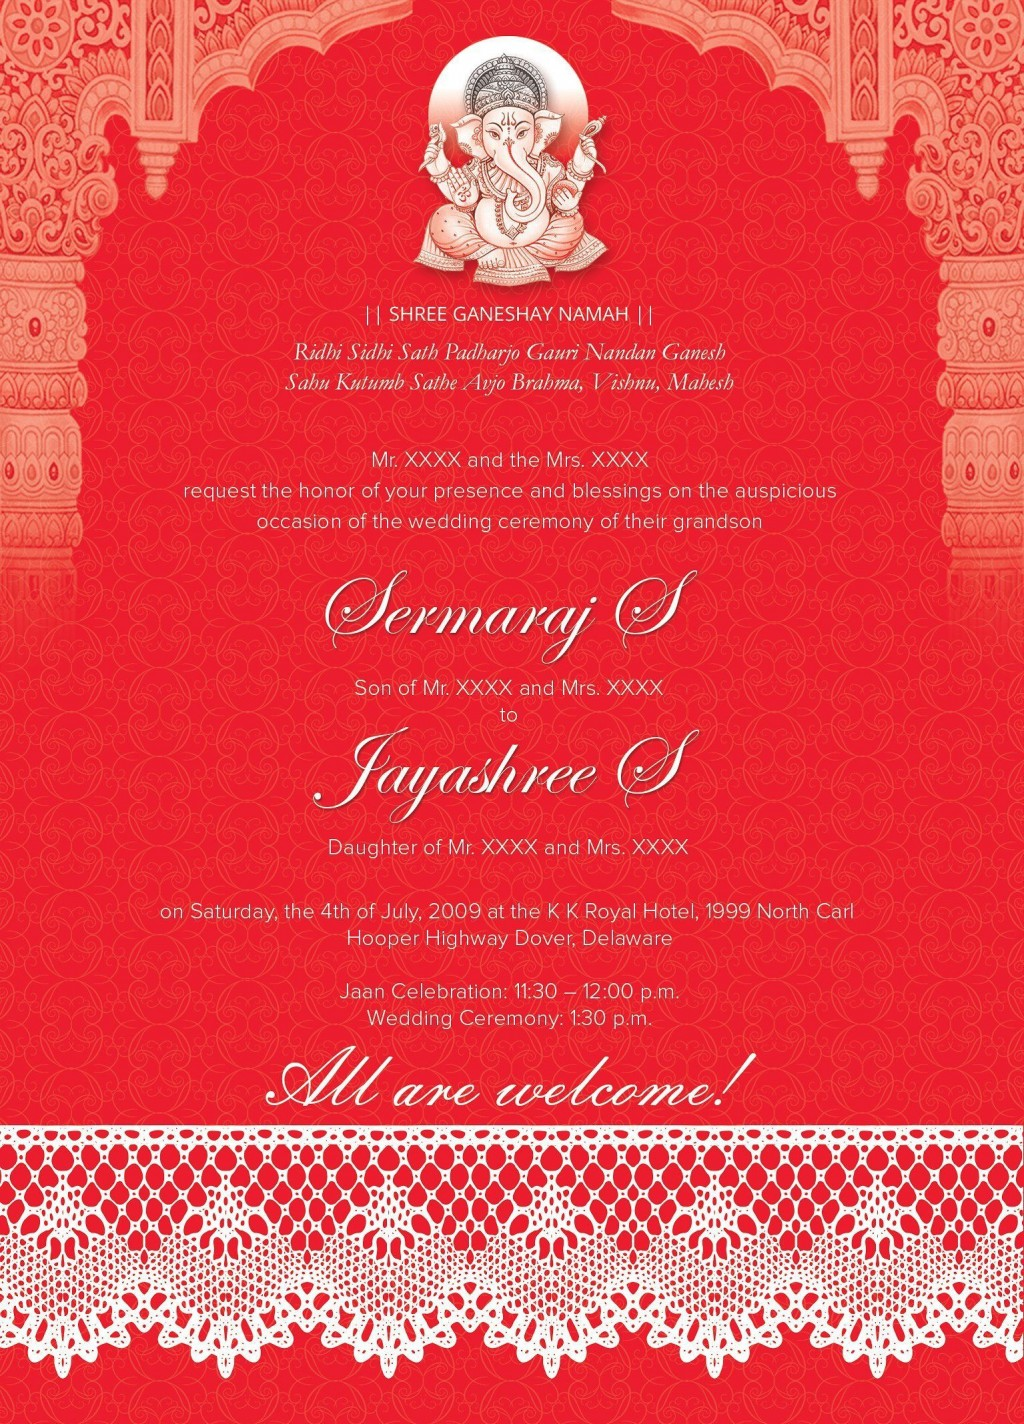 005 Marvelou Free Online Indian Wedding Invitation Card Template Image Large